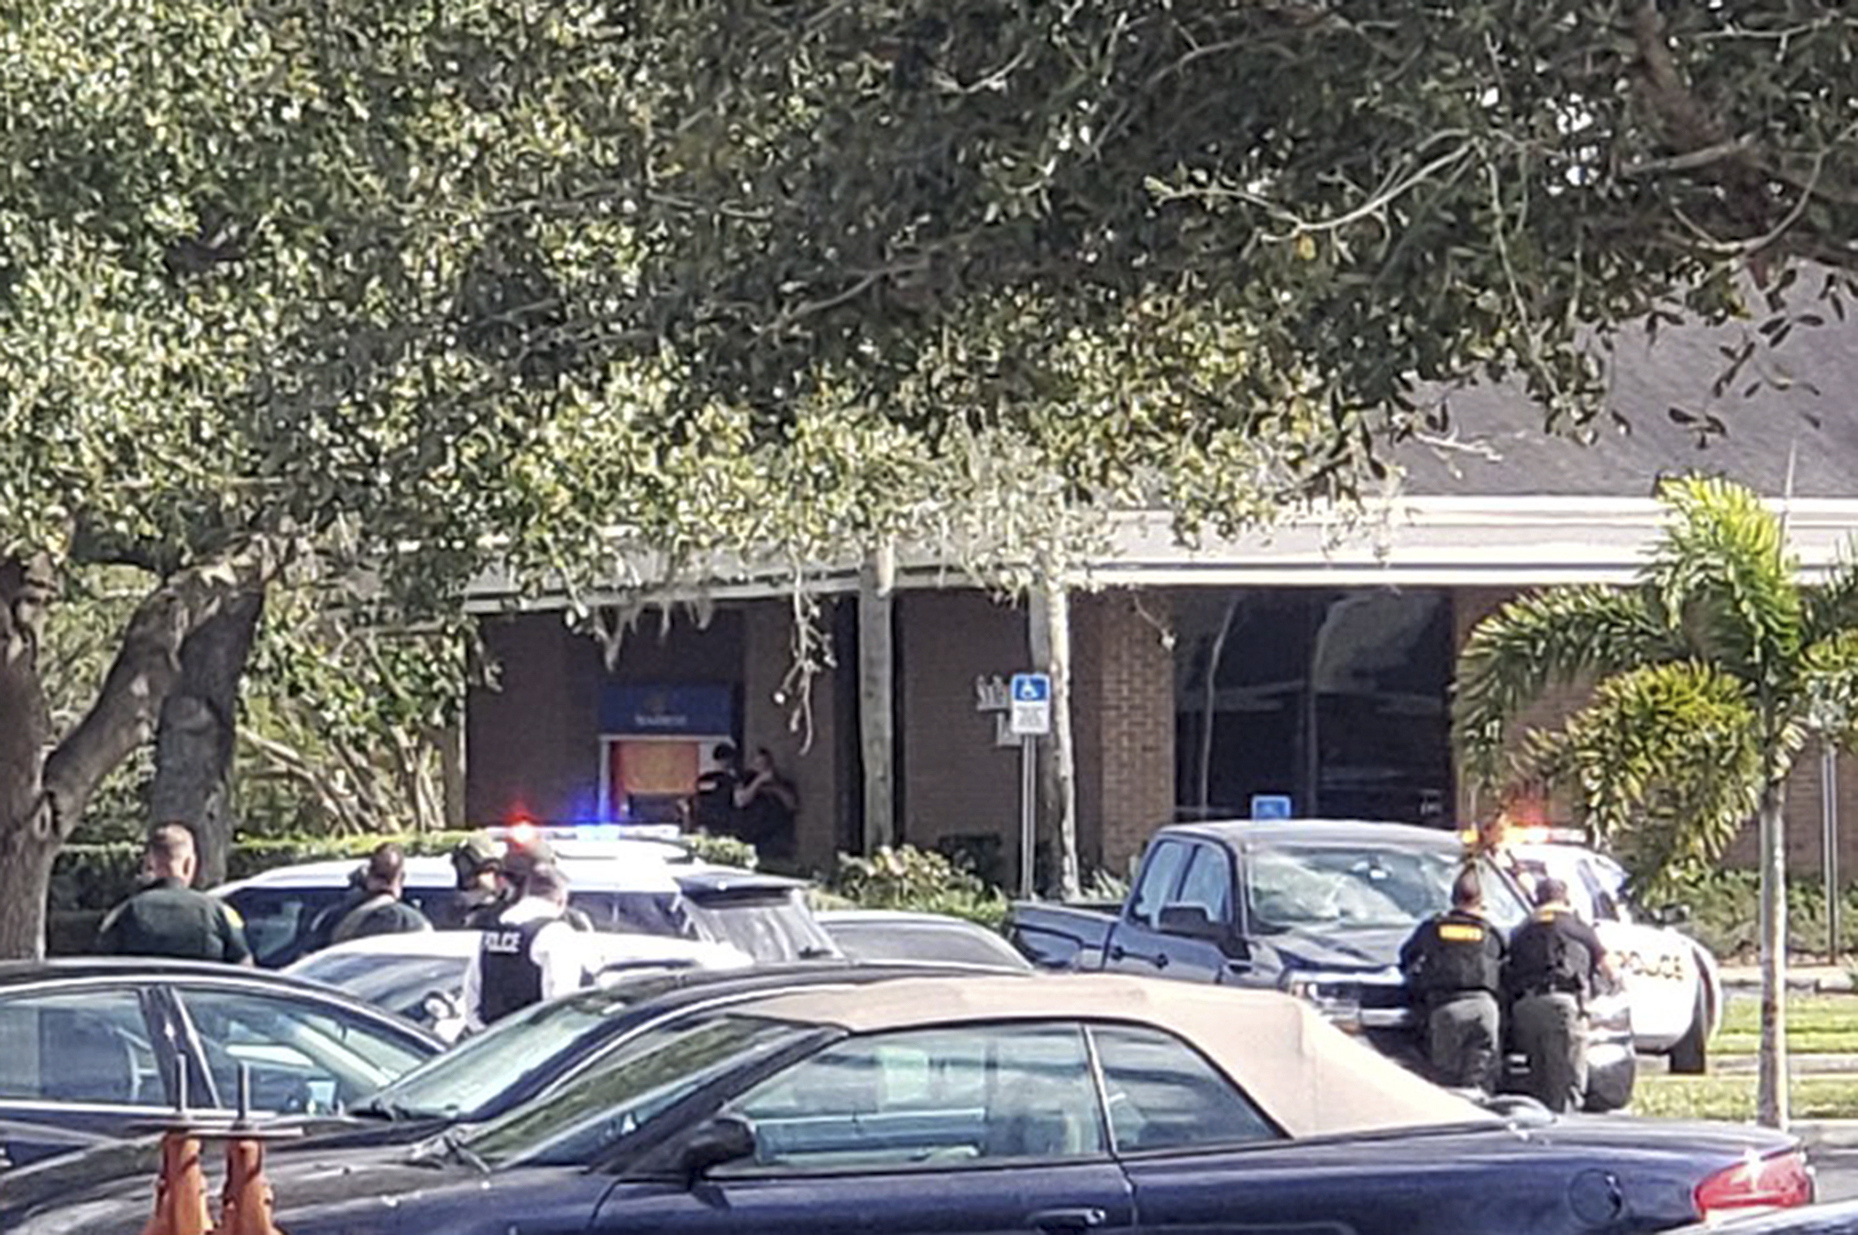 5 shot and killed inside Florida bank, suspect arrested